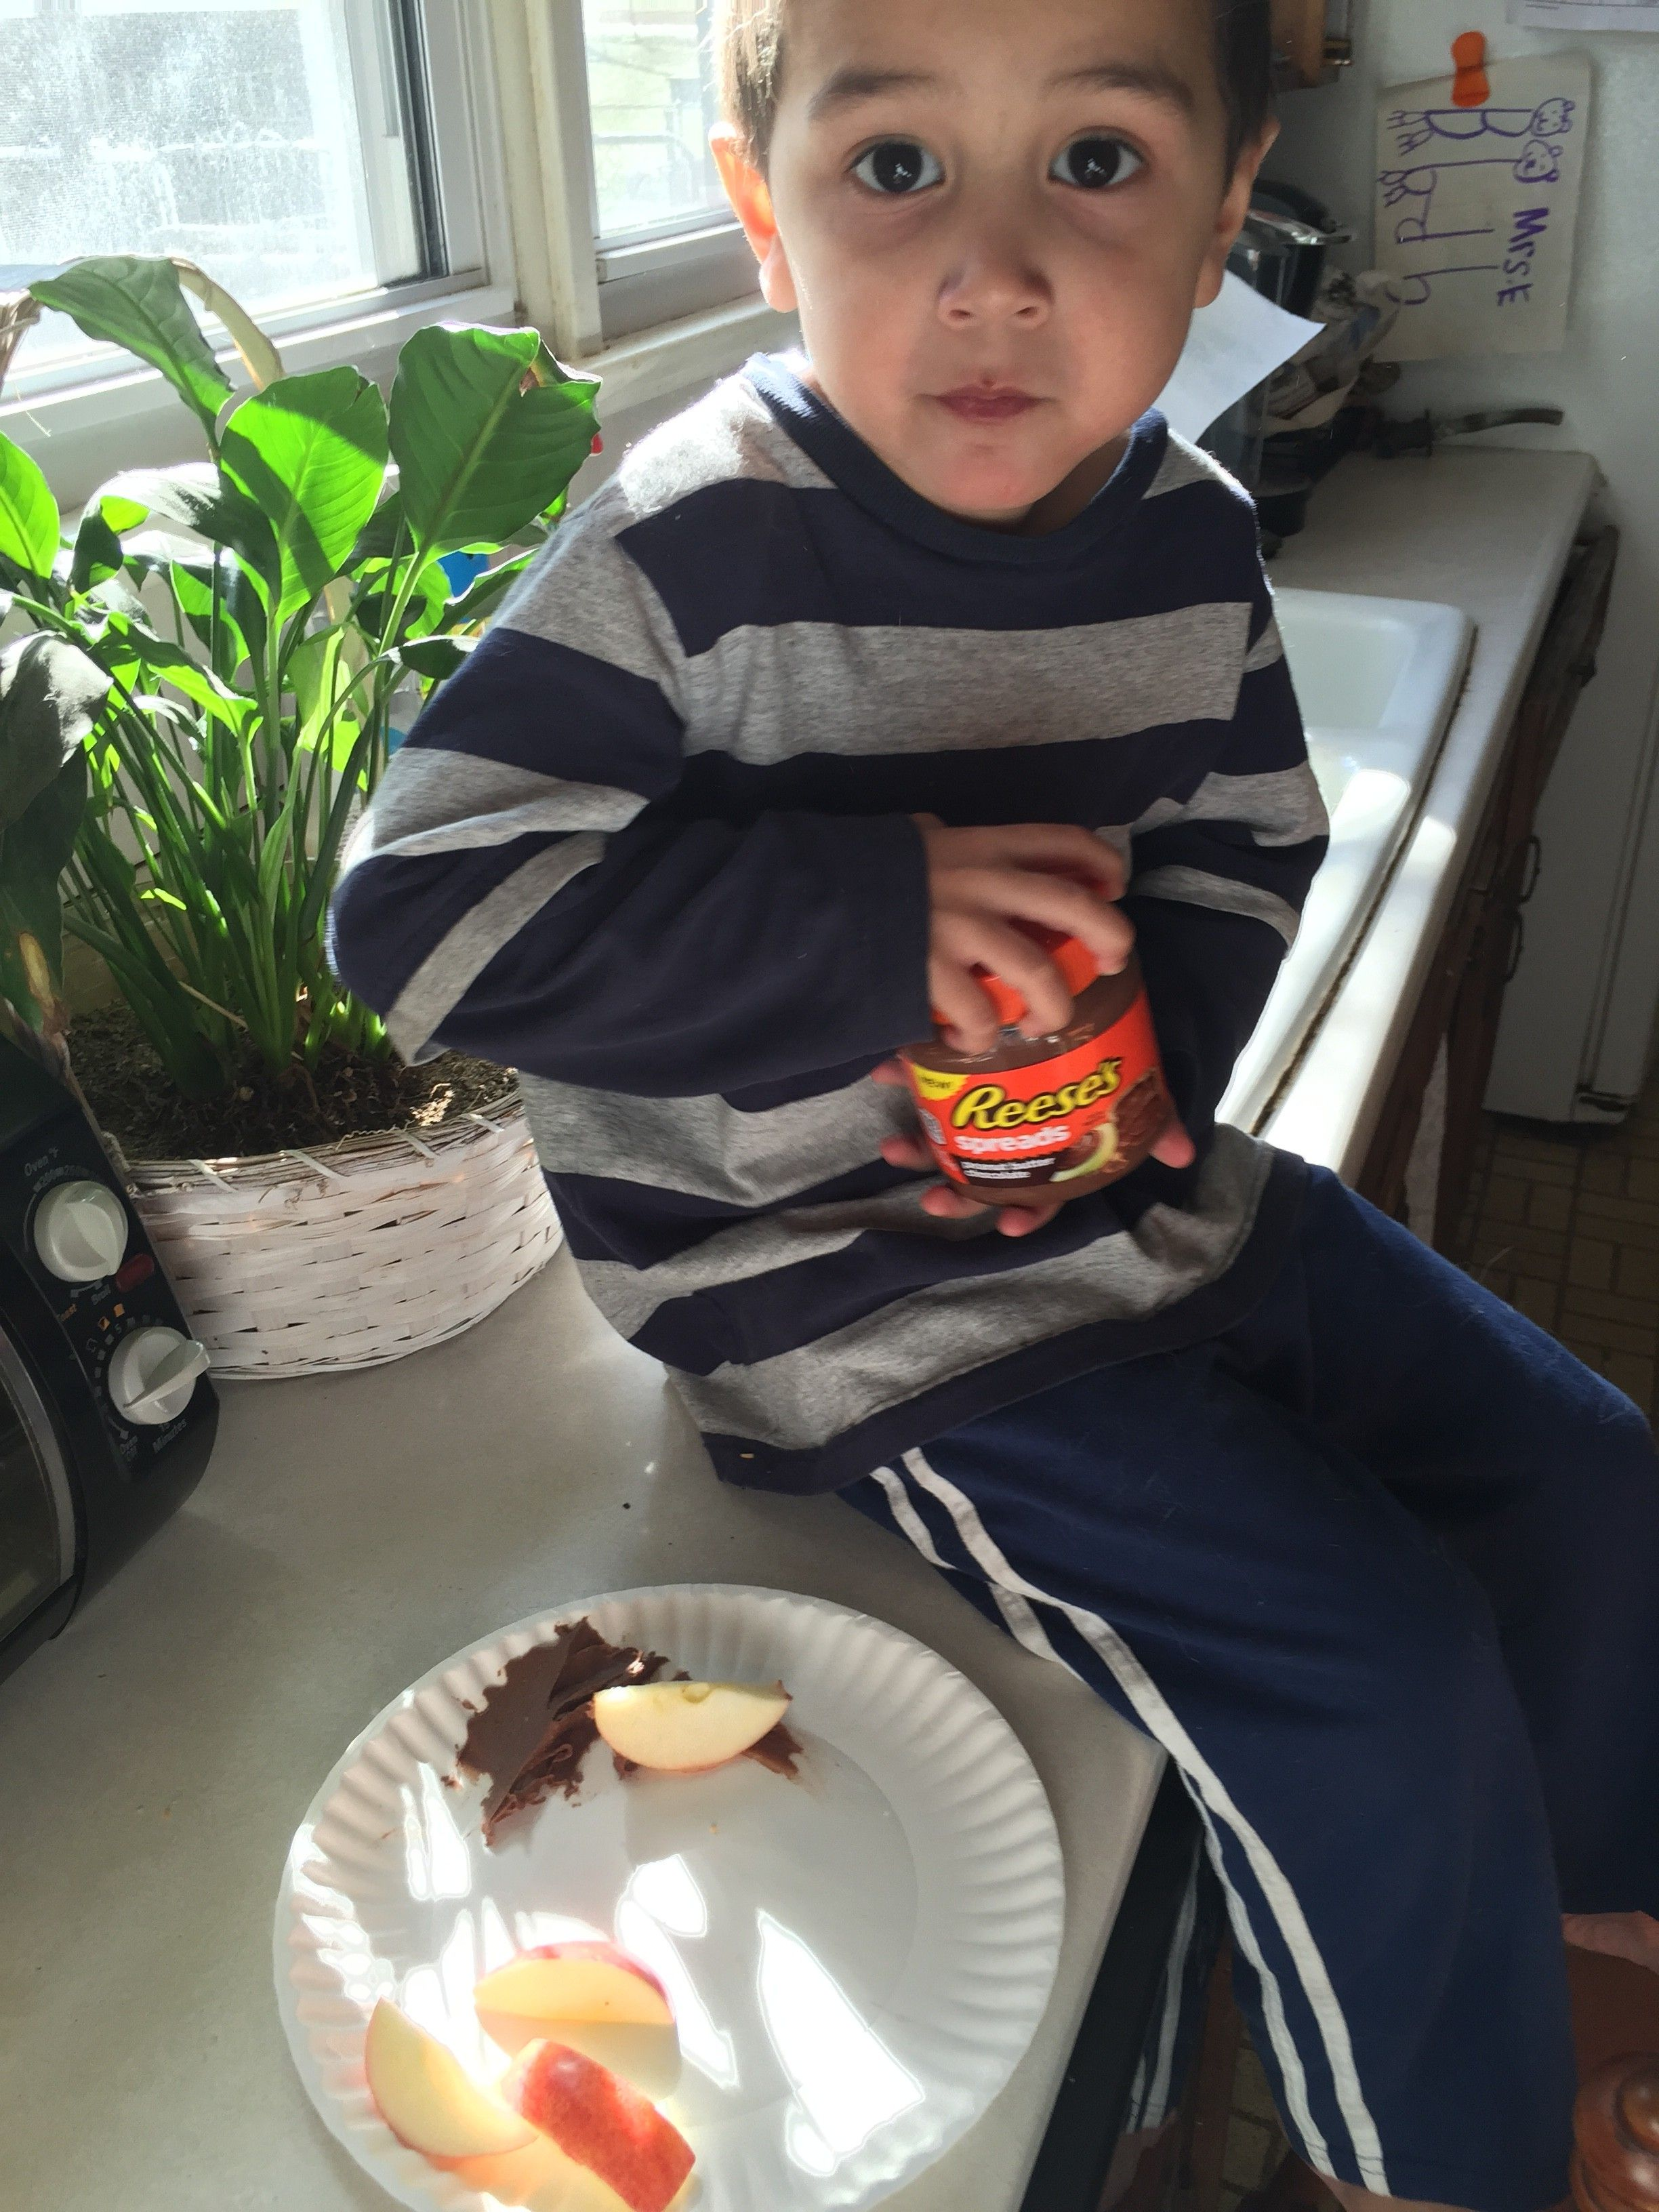 My 4 year old and our apples and spread #ReesesSpreads and #Contest